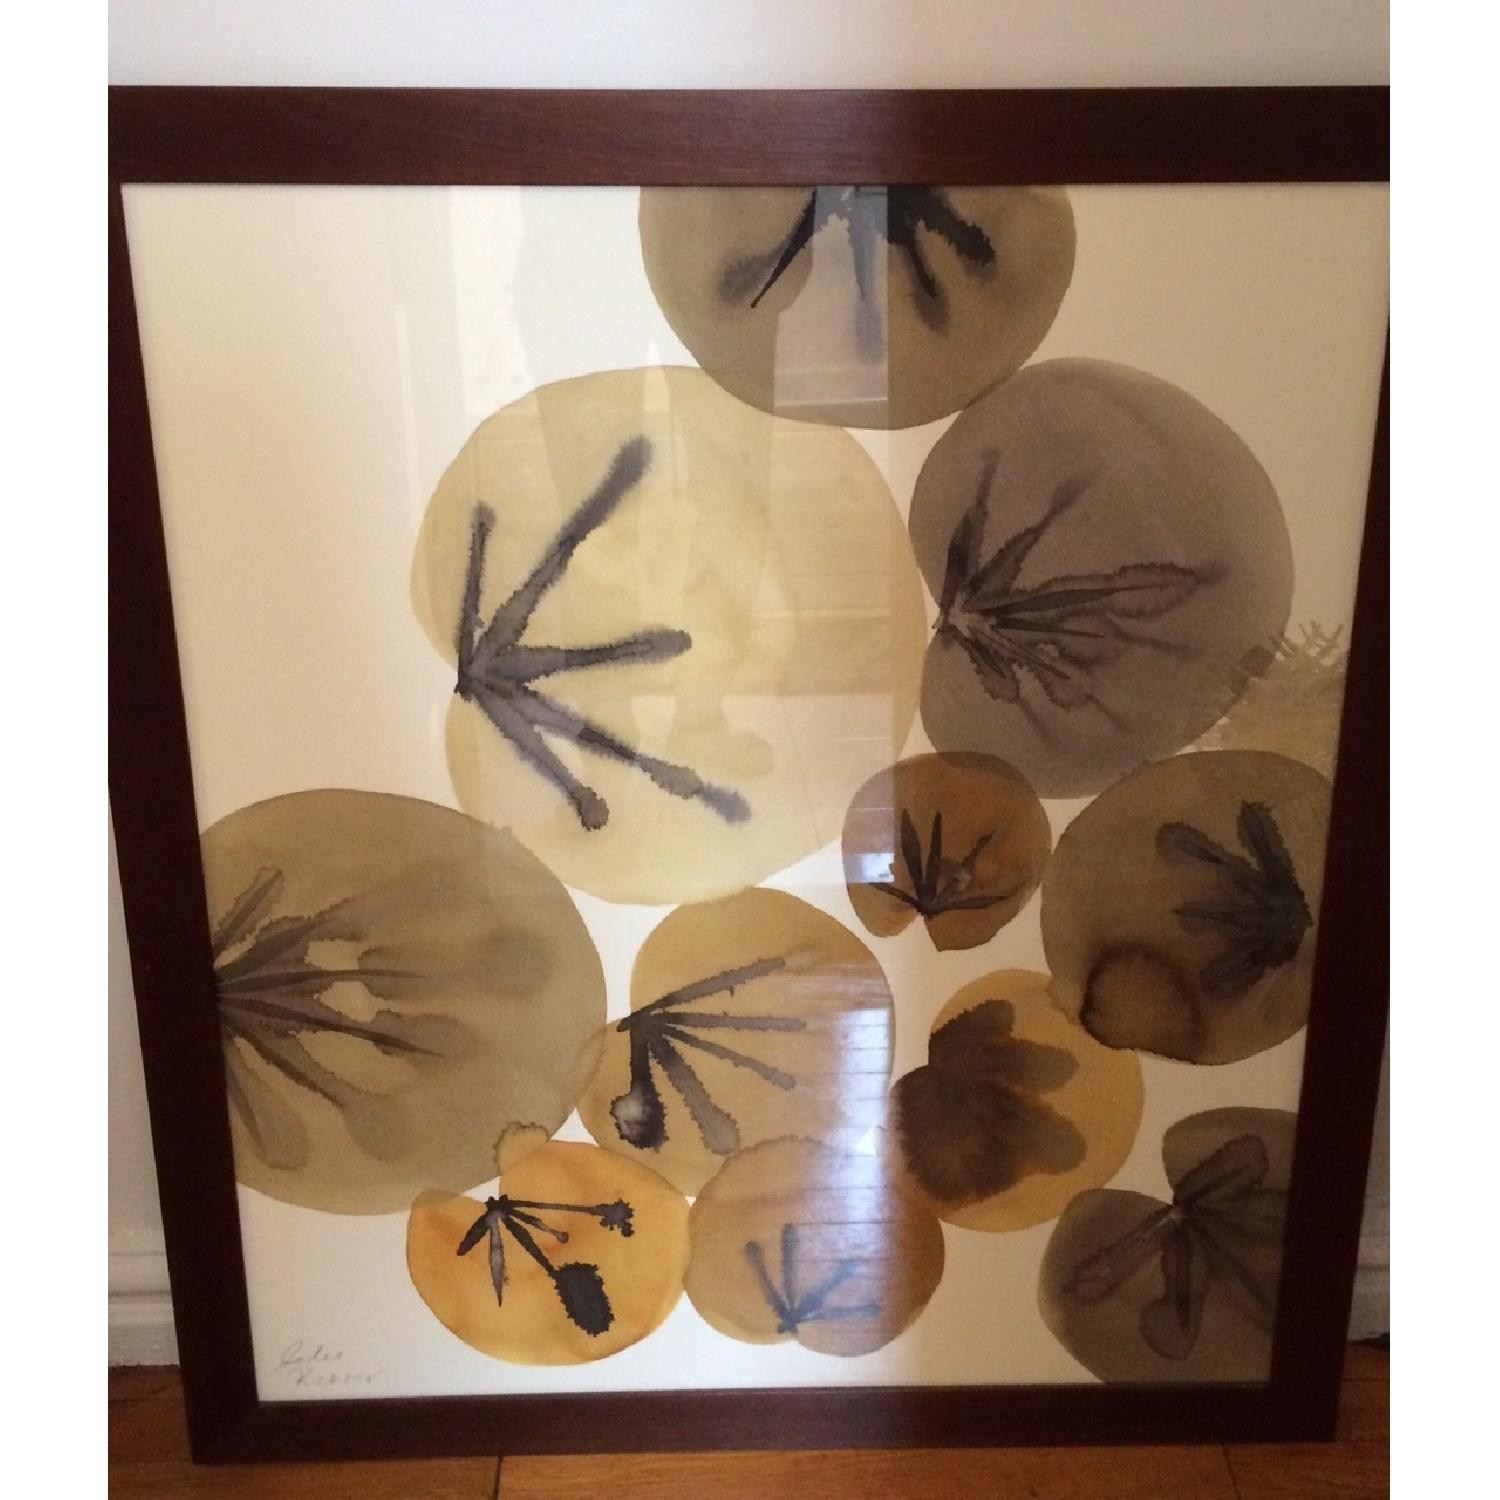 Crate & Barrel Lily Pads Wall Art - image-1